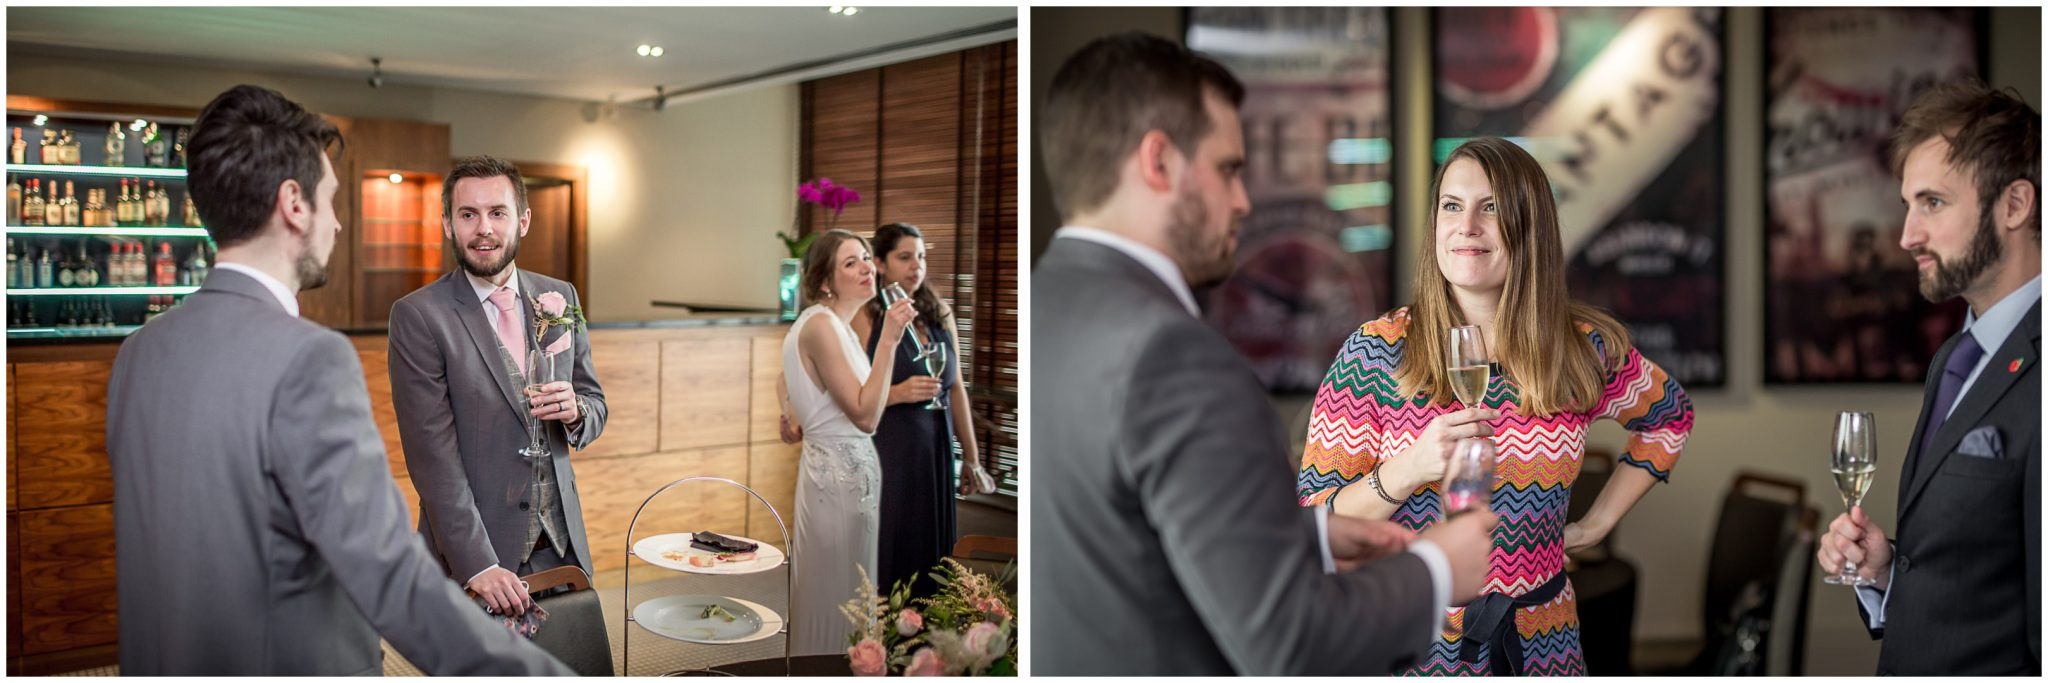 Documentary wedding photography guests at reception drinks and nibbles